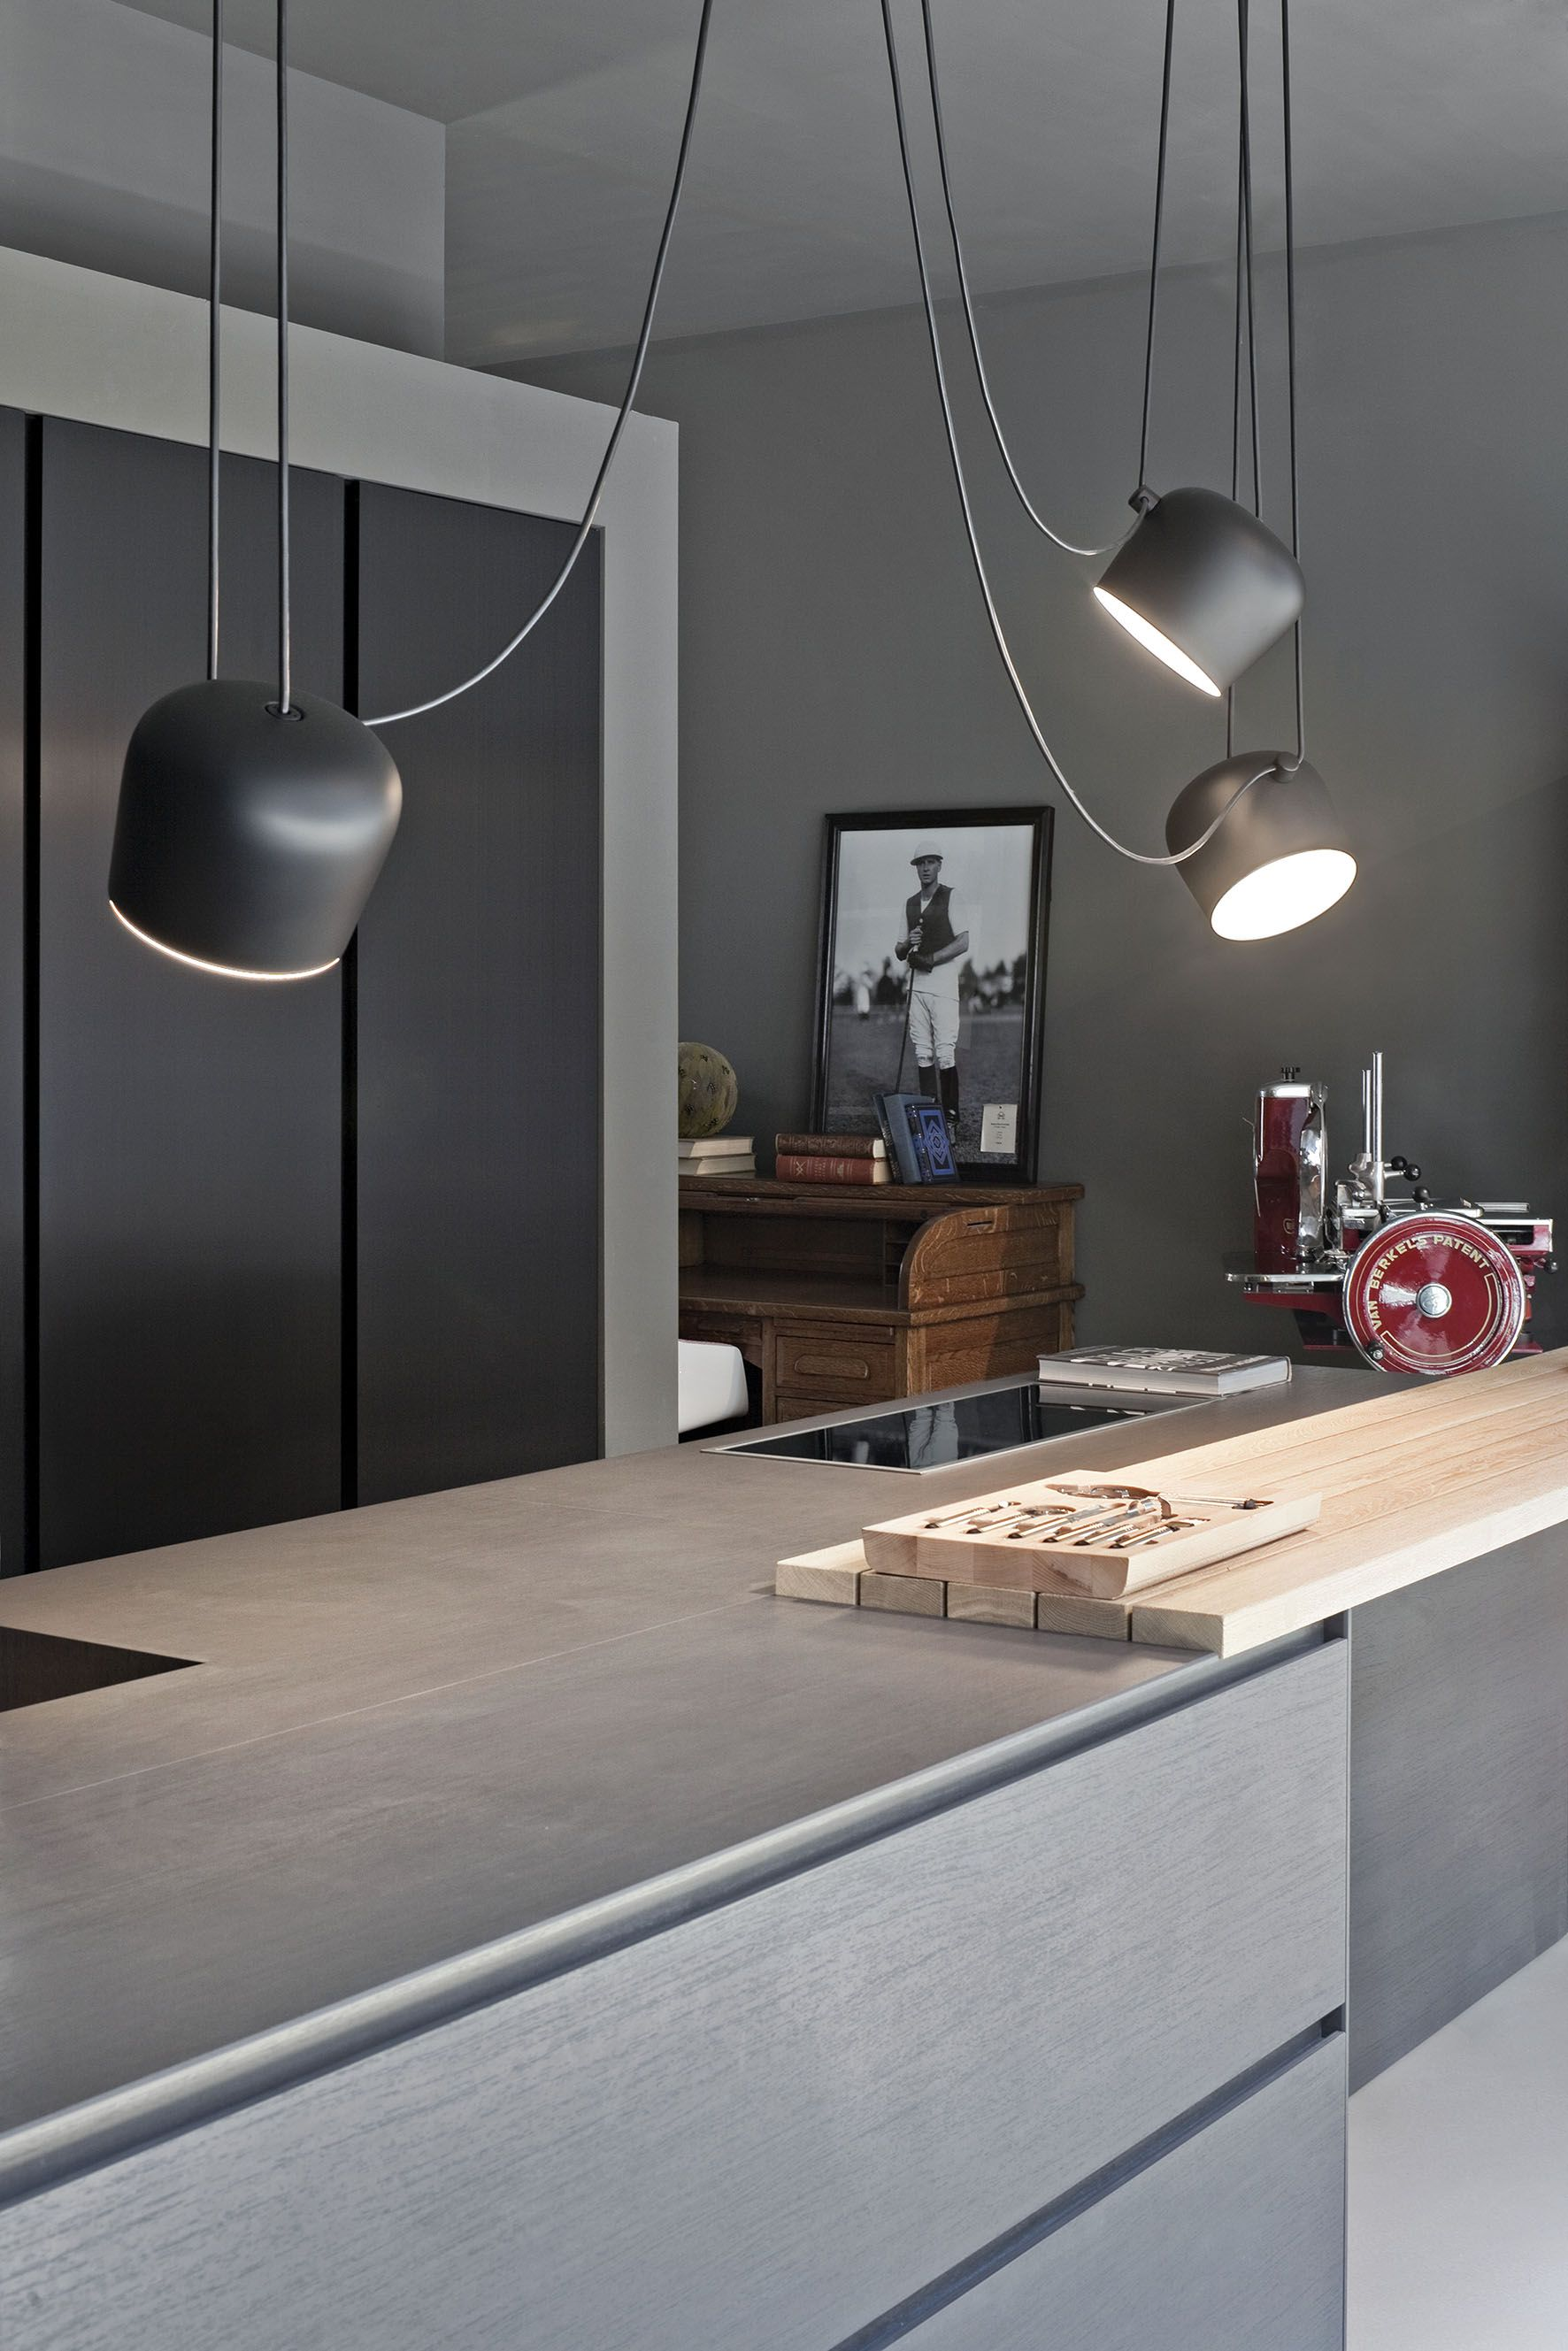 Hängelampe Für Küchenblock Aim Flos Bouroullec Kitchens Kitchen Pendant Lighting